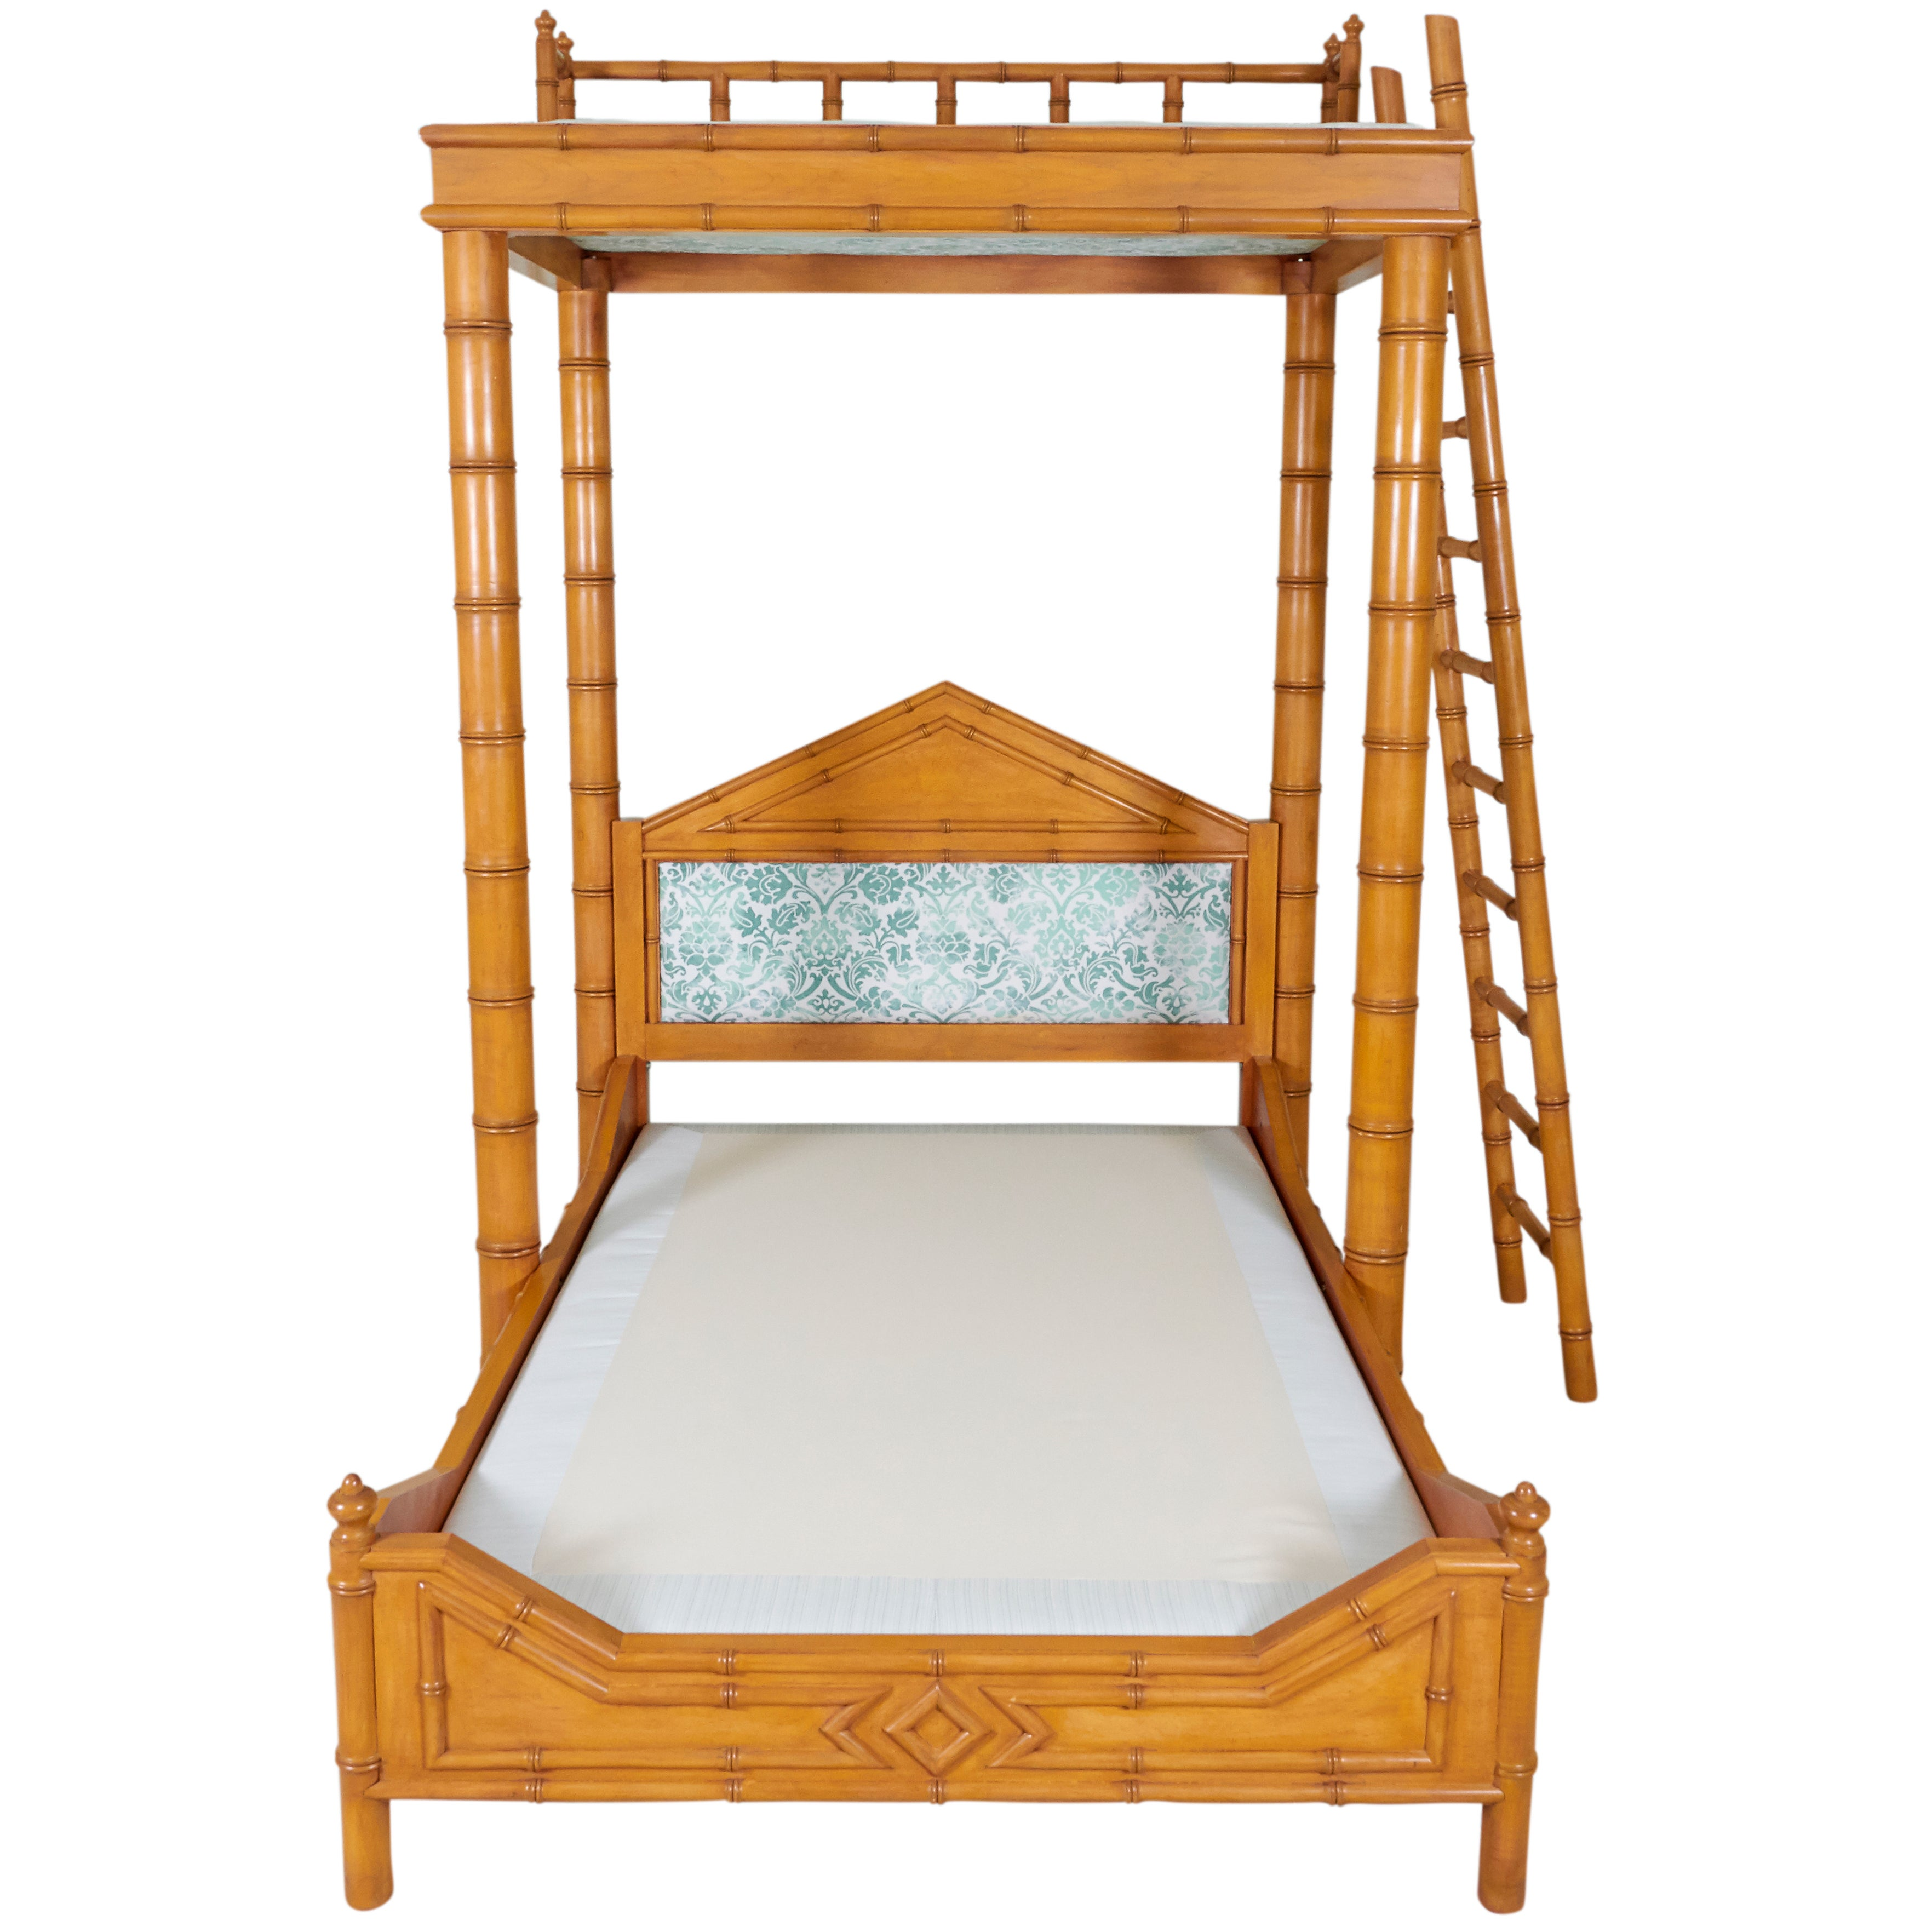 Faux Bamboo Bed with Platform Canopy For Sale at 1stdibs